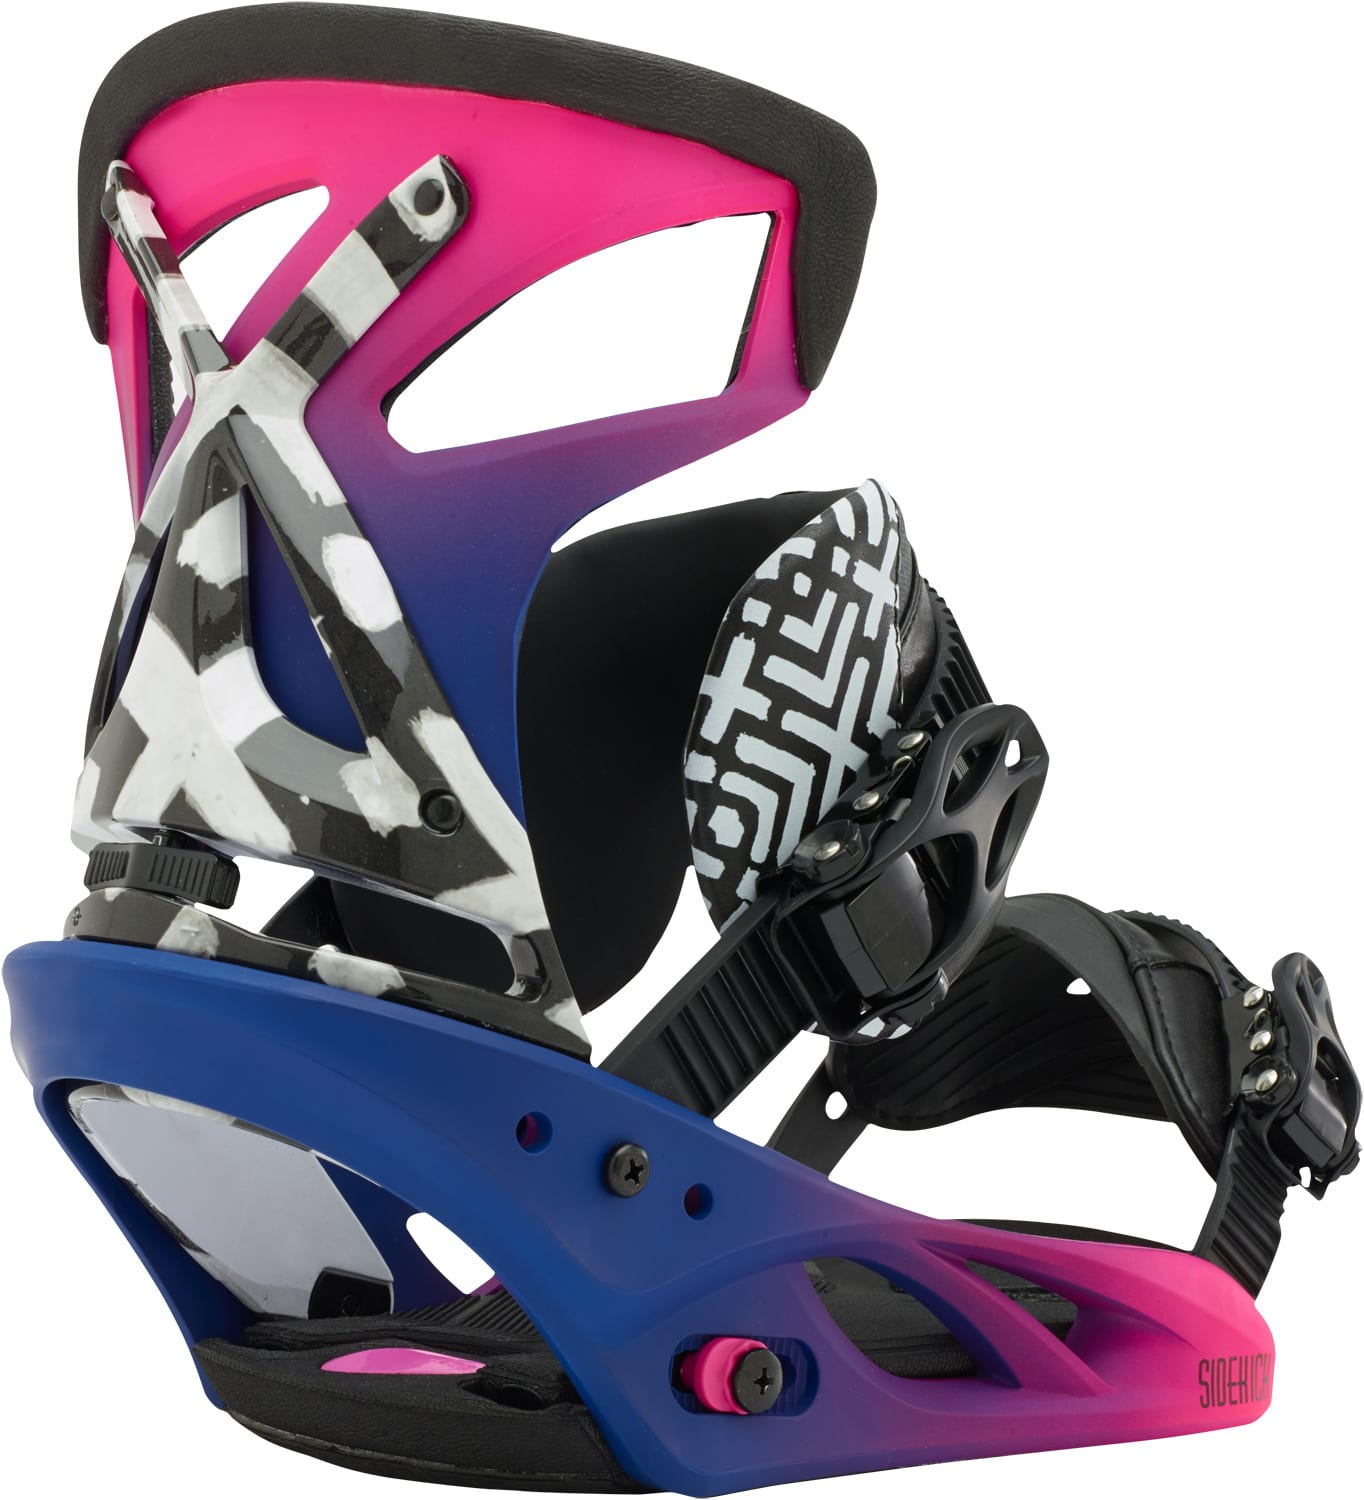 On Sale Burton Sidekick Snowboard Bindings